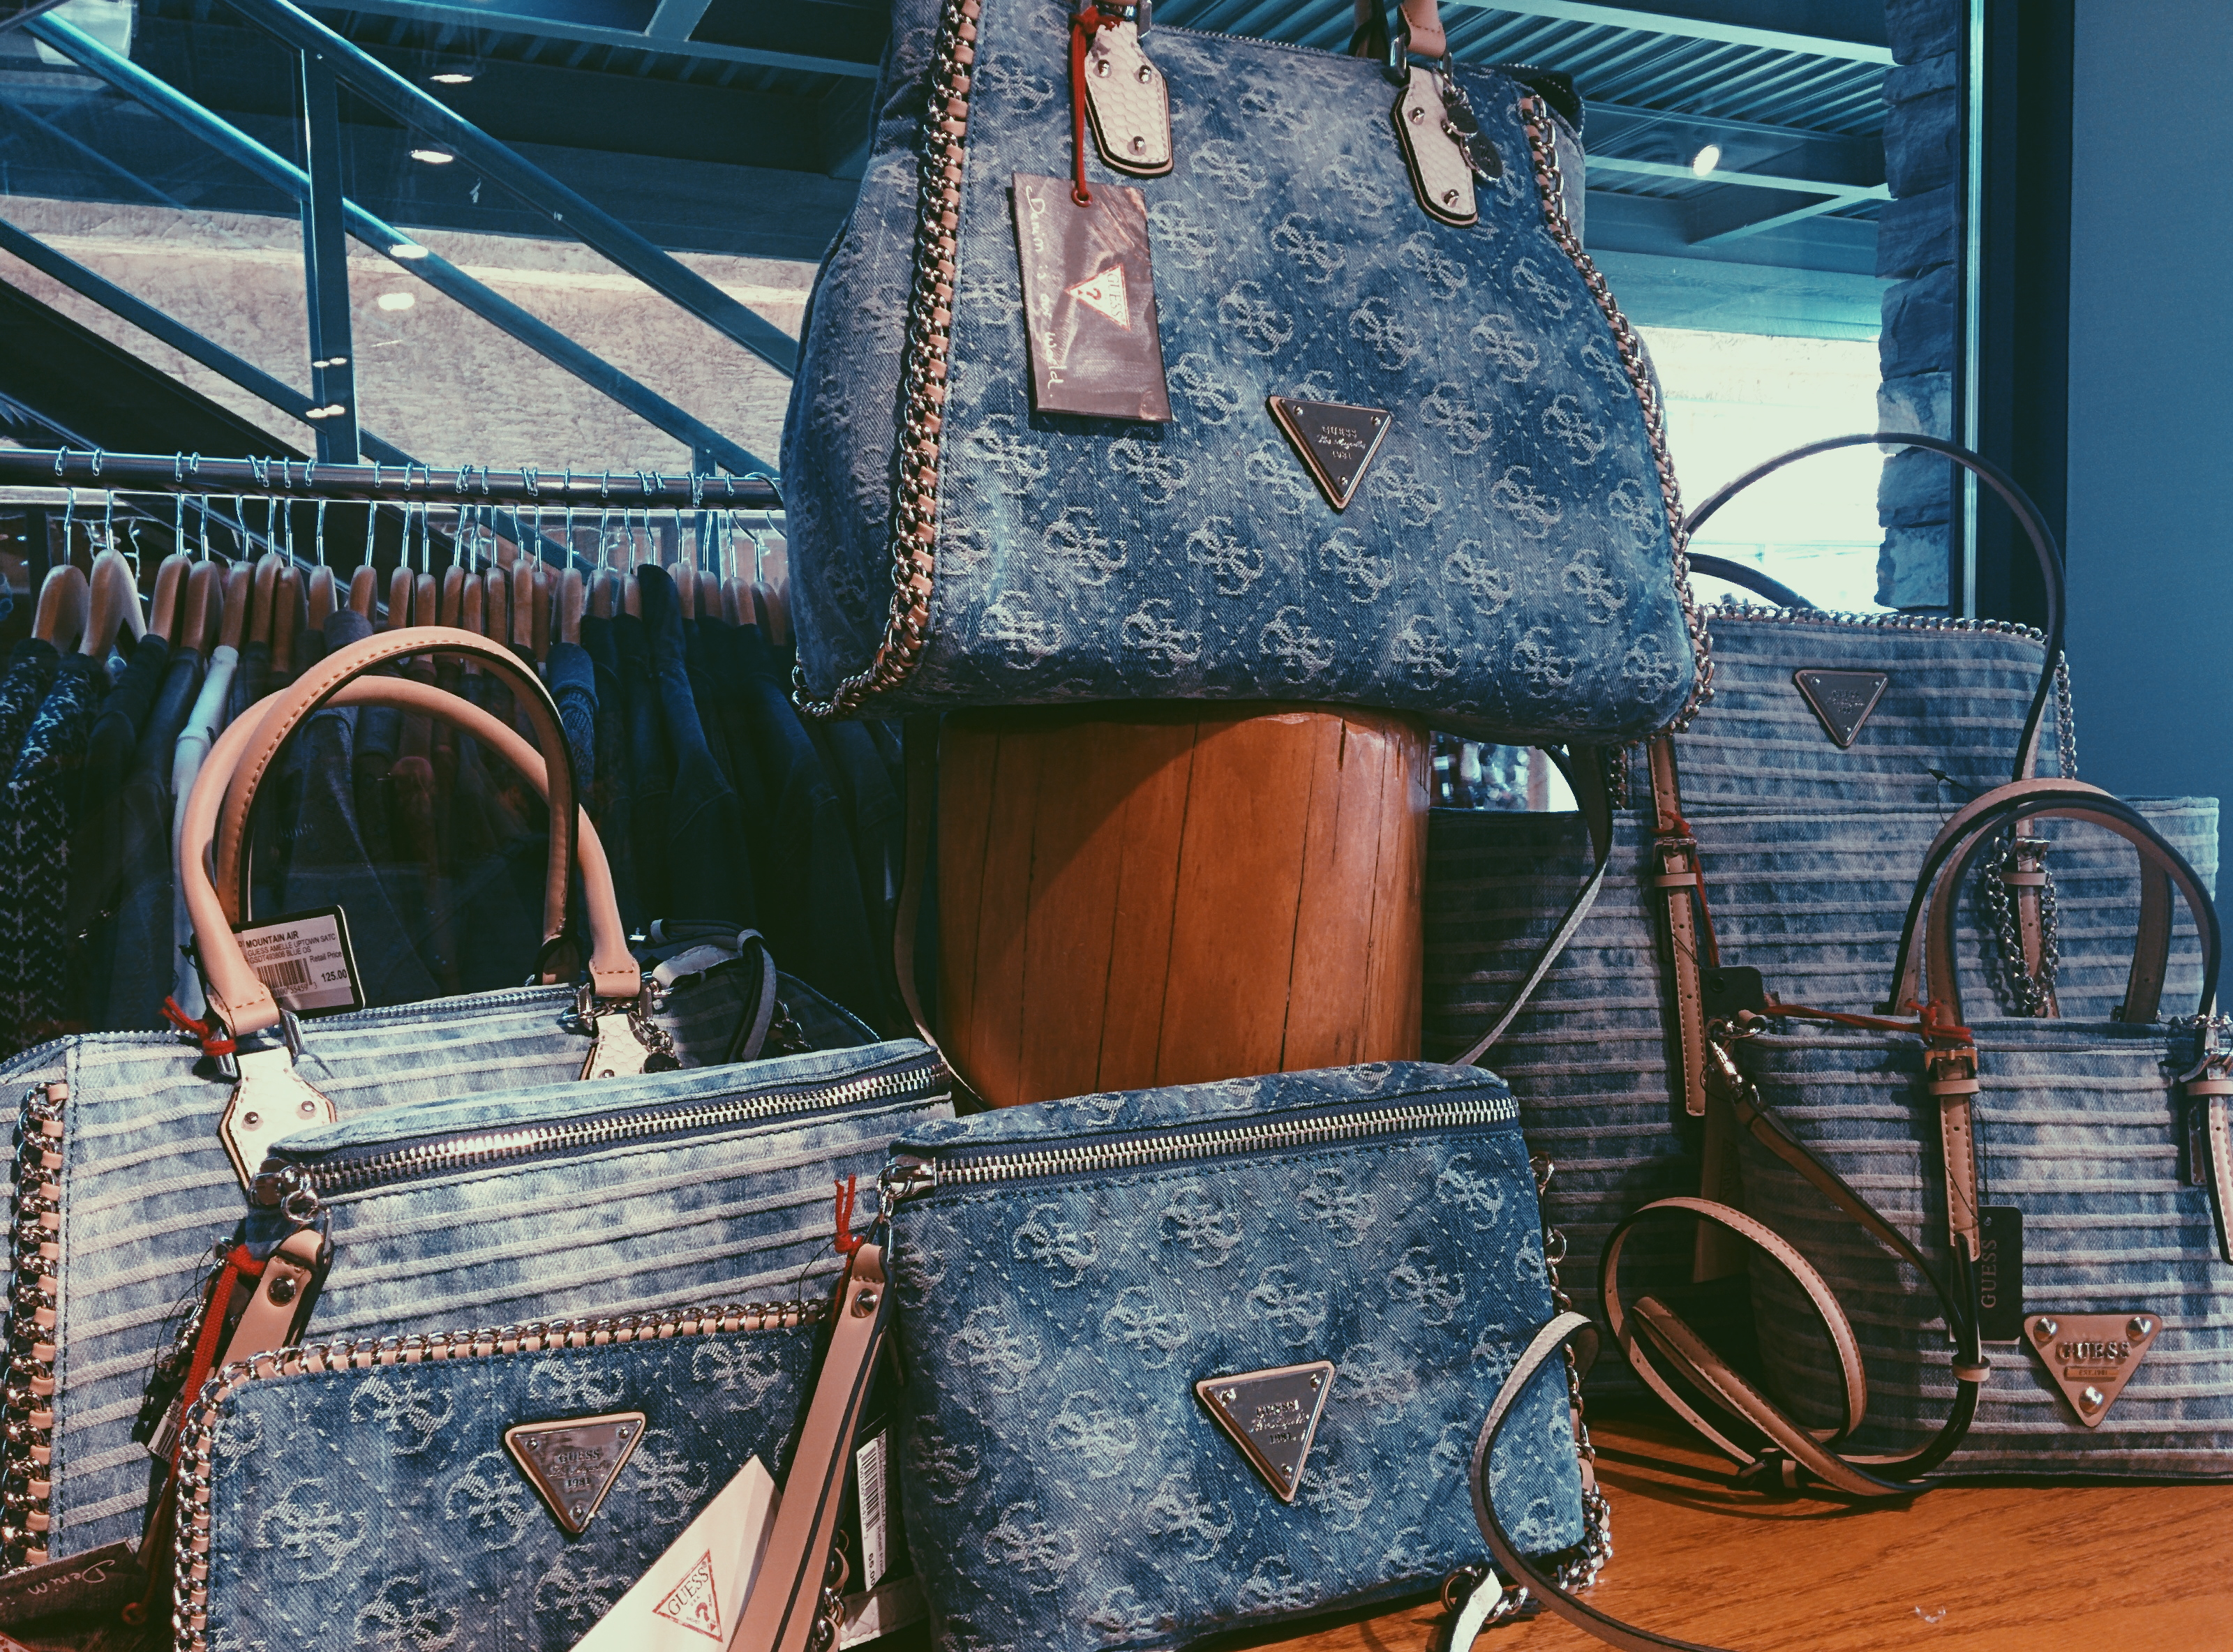 new guess bags in acid wash blue denim our favourite by far is the